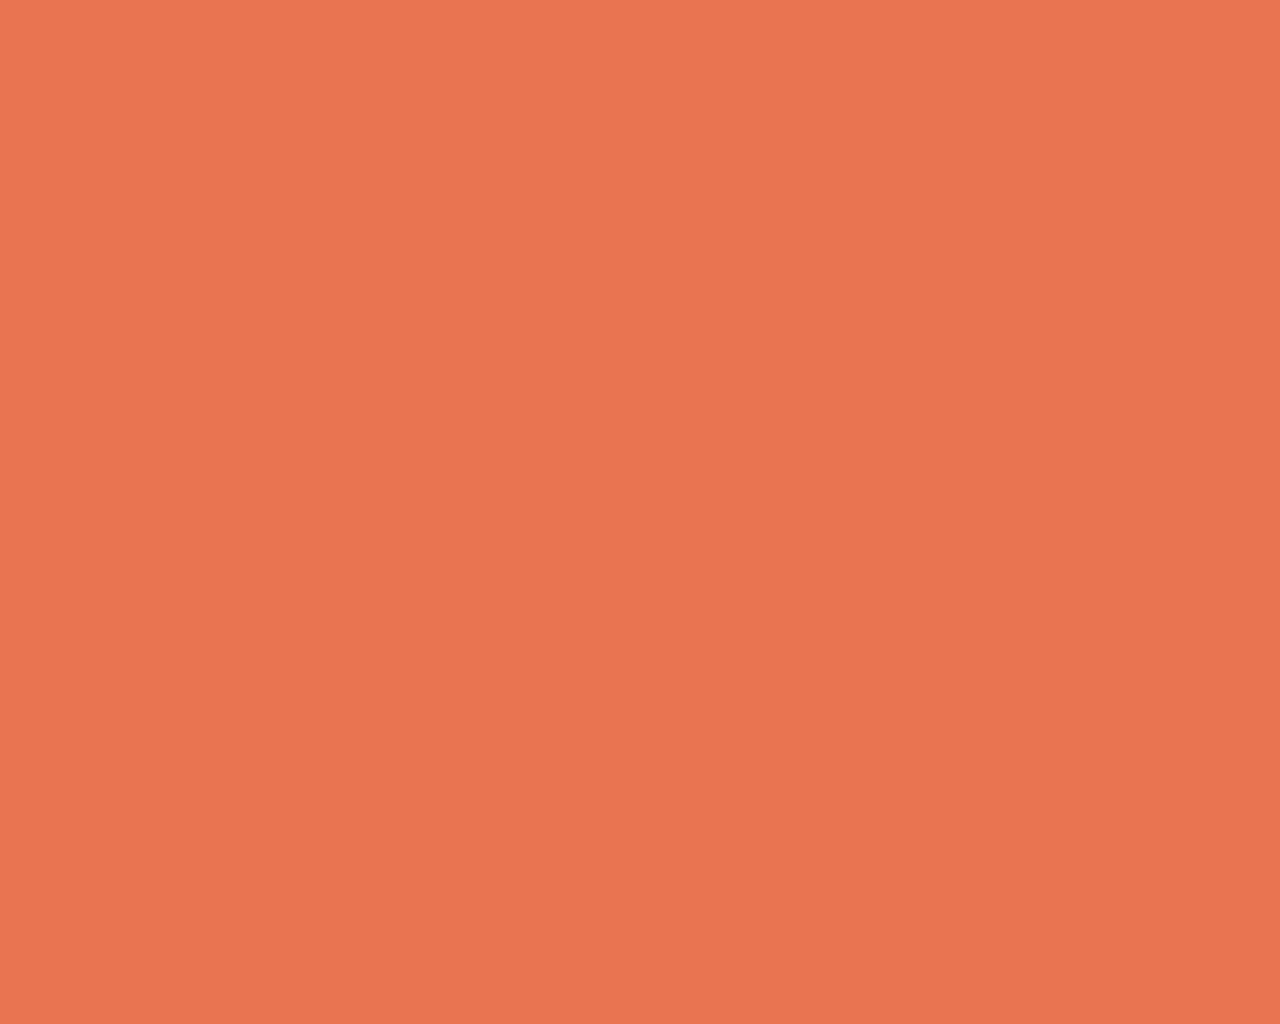 1280x1024 Burnt Sienna Solid Color Background